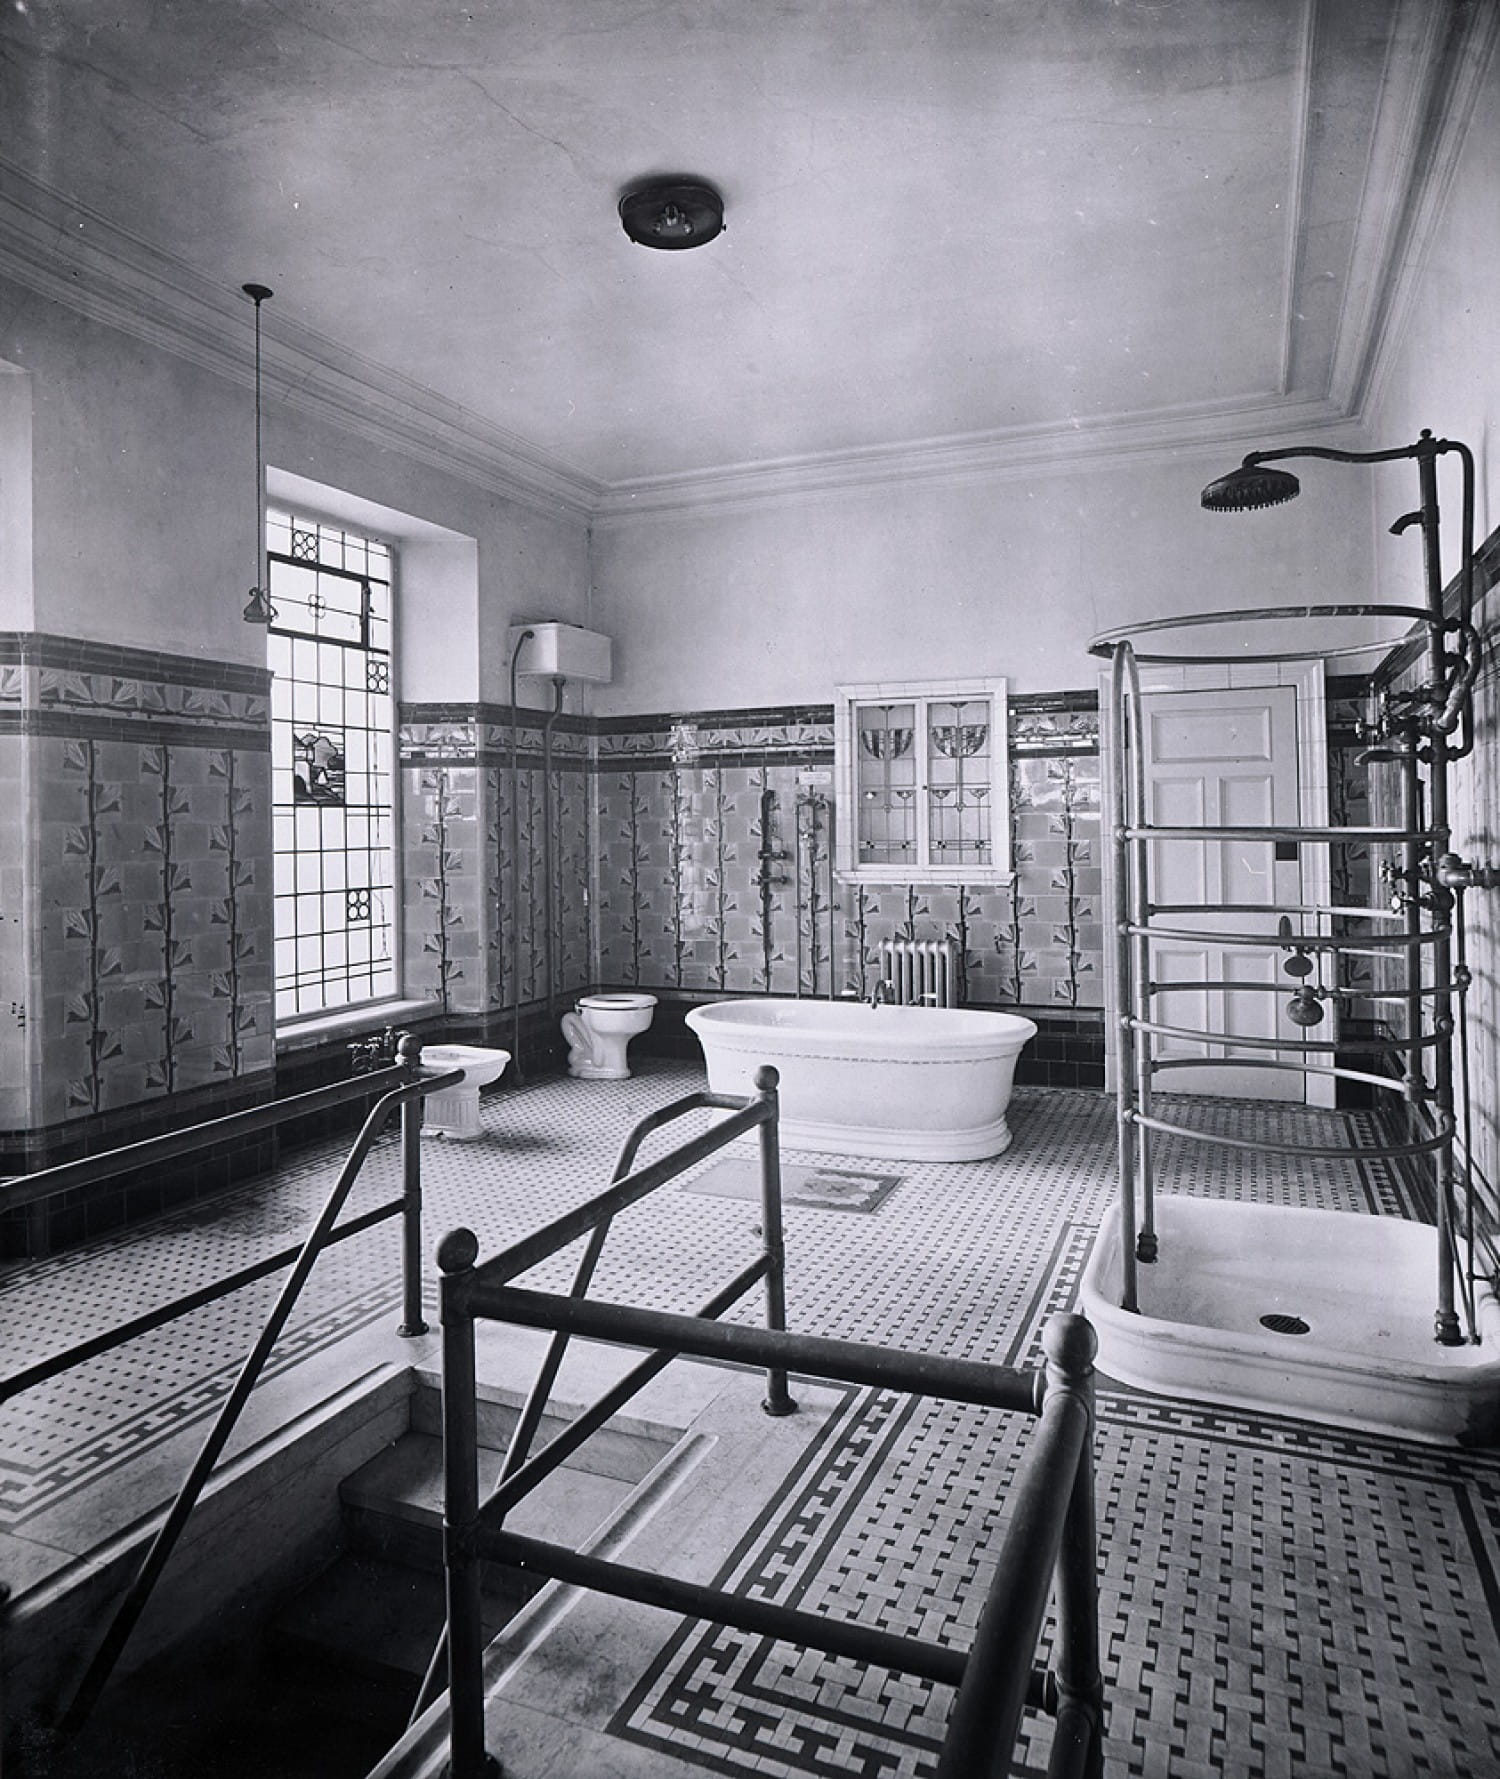 Palatial lavvy, Blythswood Square, early 1900s (Picture: Glasgow Museums)